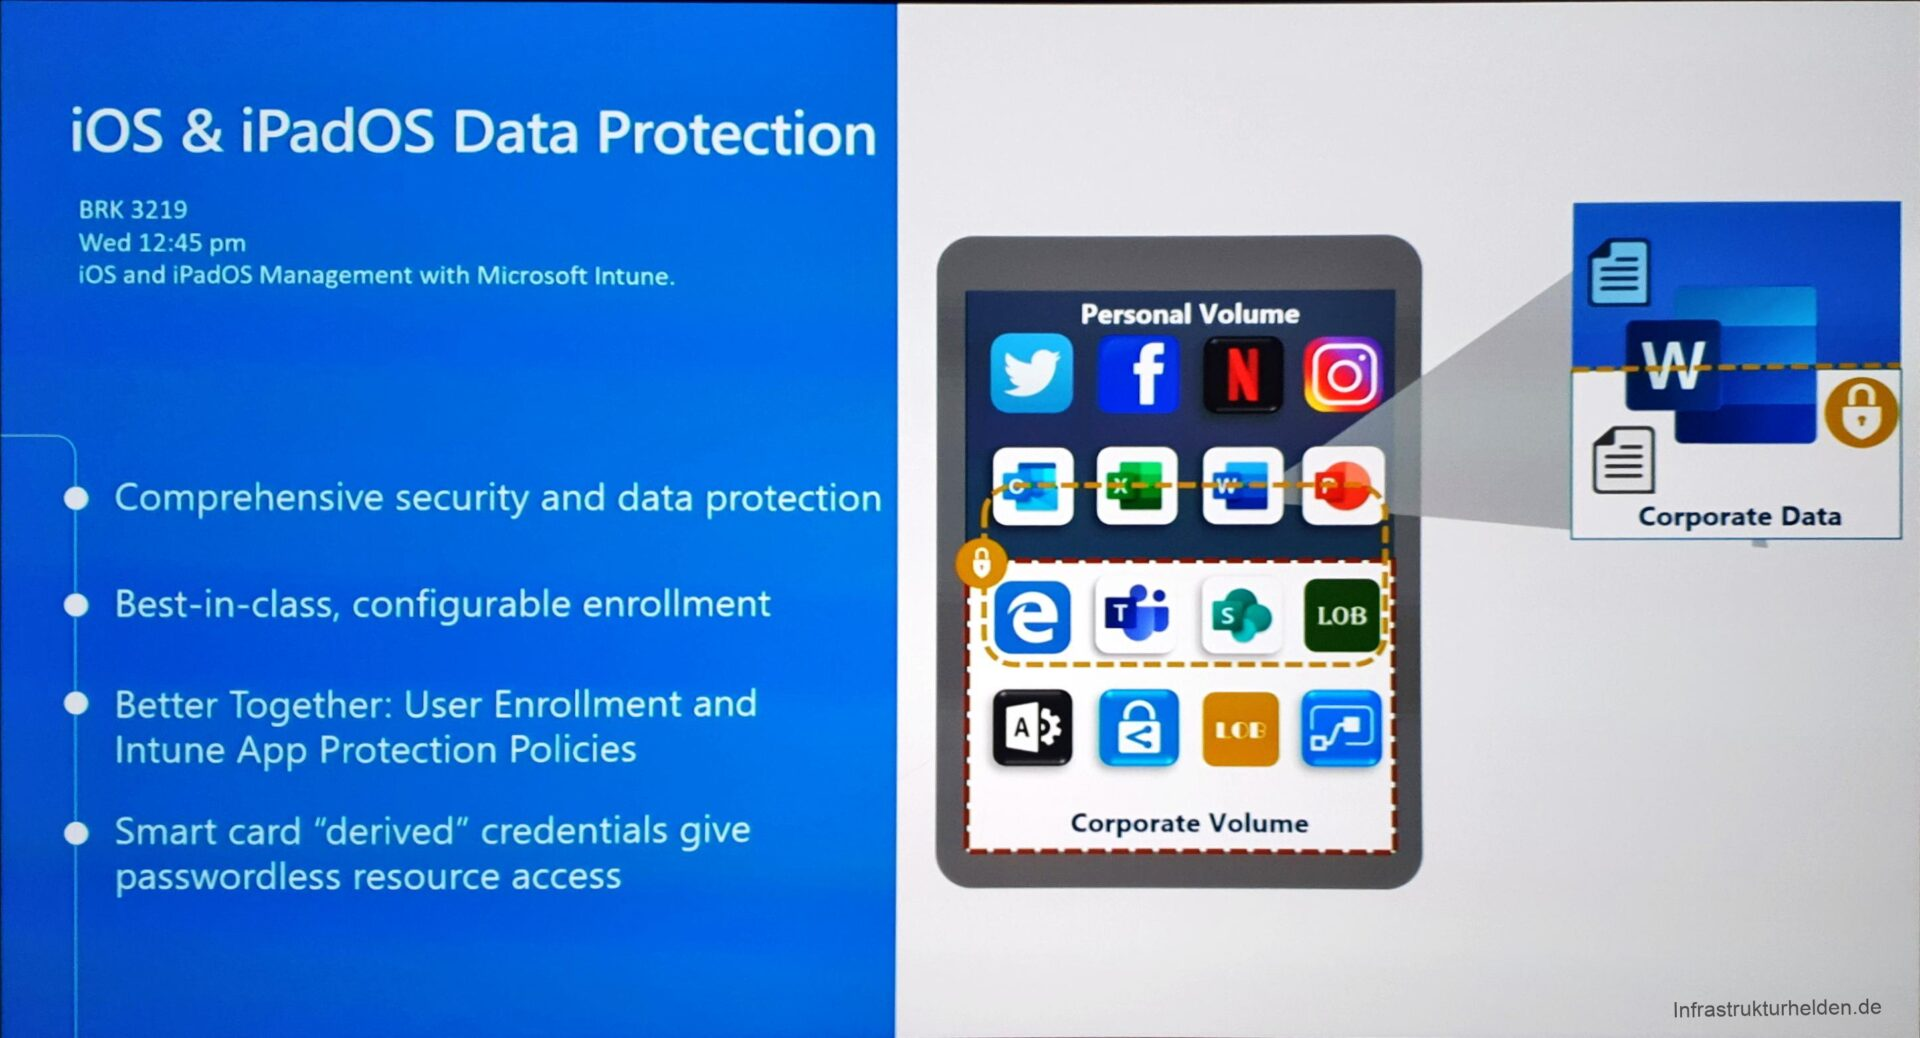 "Computergenerierter Alternativtext: iOS & iPadOS Data Protection  BRK 3219  Wed 12:45 pm  iOS and iPadOS Management With Microsoft Intune.  Comprehensive security and data protection  Best-in-class, configurable enrollment  Better Together: User Enrollment and  Intune App Protection Policies  e Smart card ""derived"" credentials give  passwordless resource access  Personal Volume  s  Corporate Volume  Corporate Data  1  LOB"